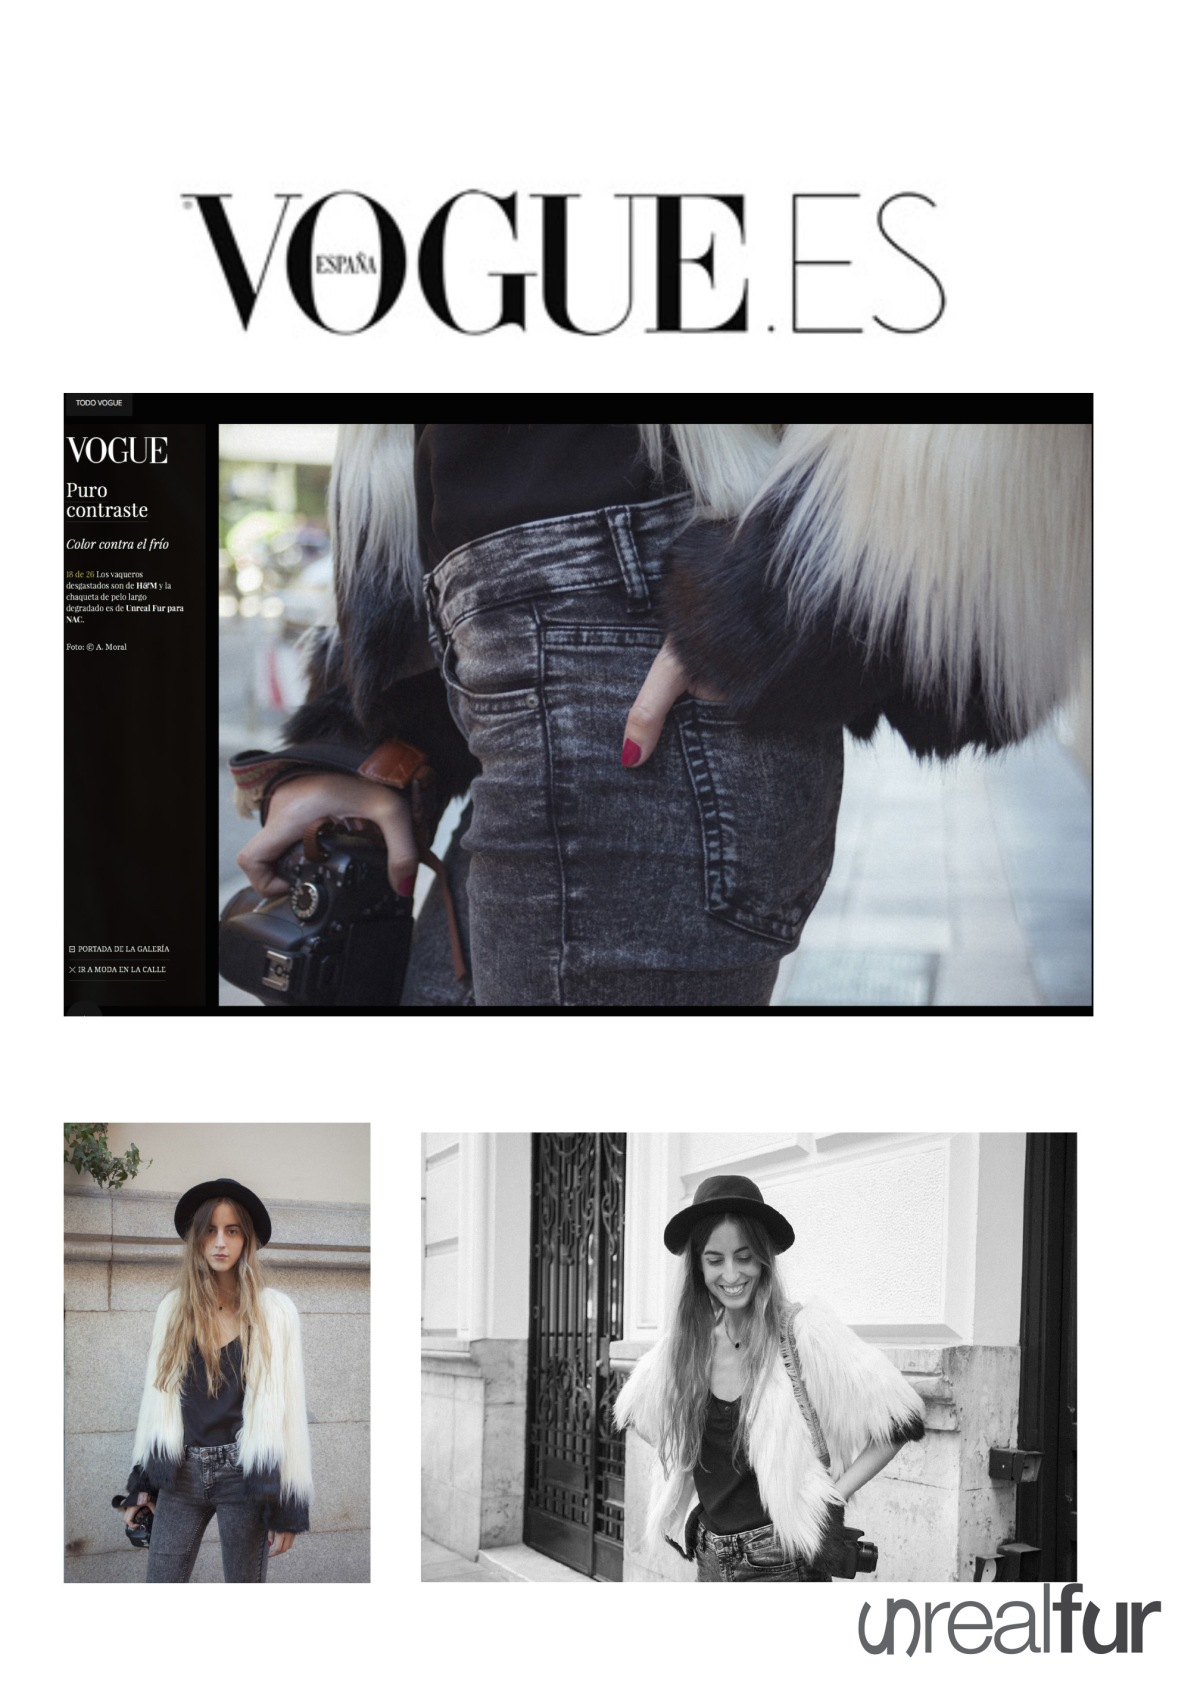 Microsoft Word - UNREAL FUR VOGUE.es.docx